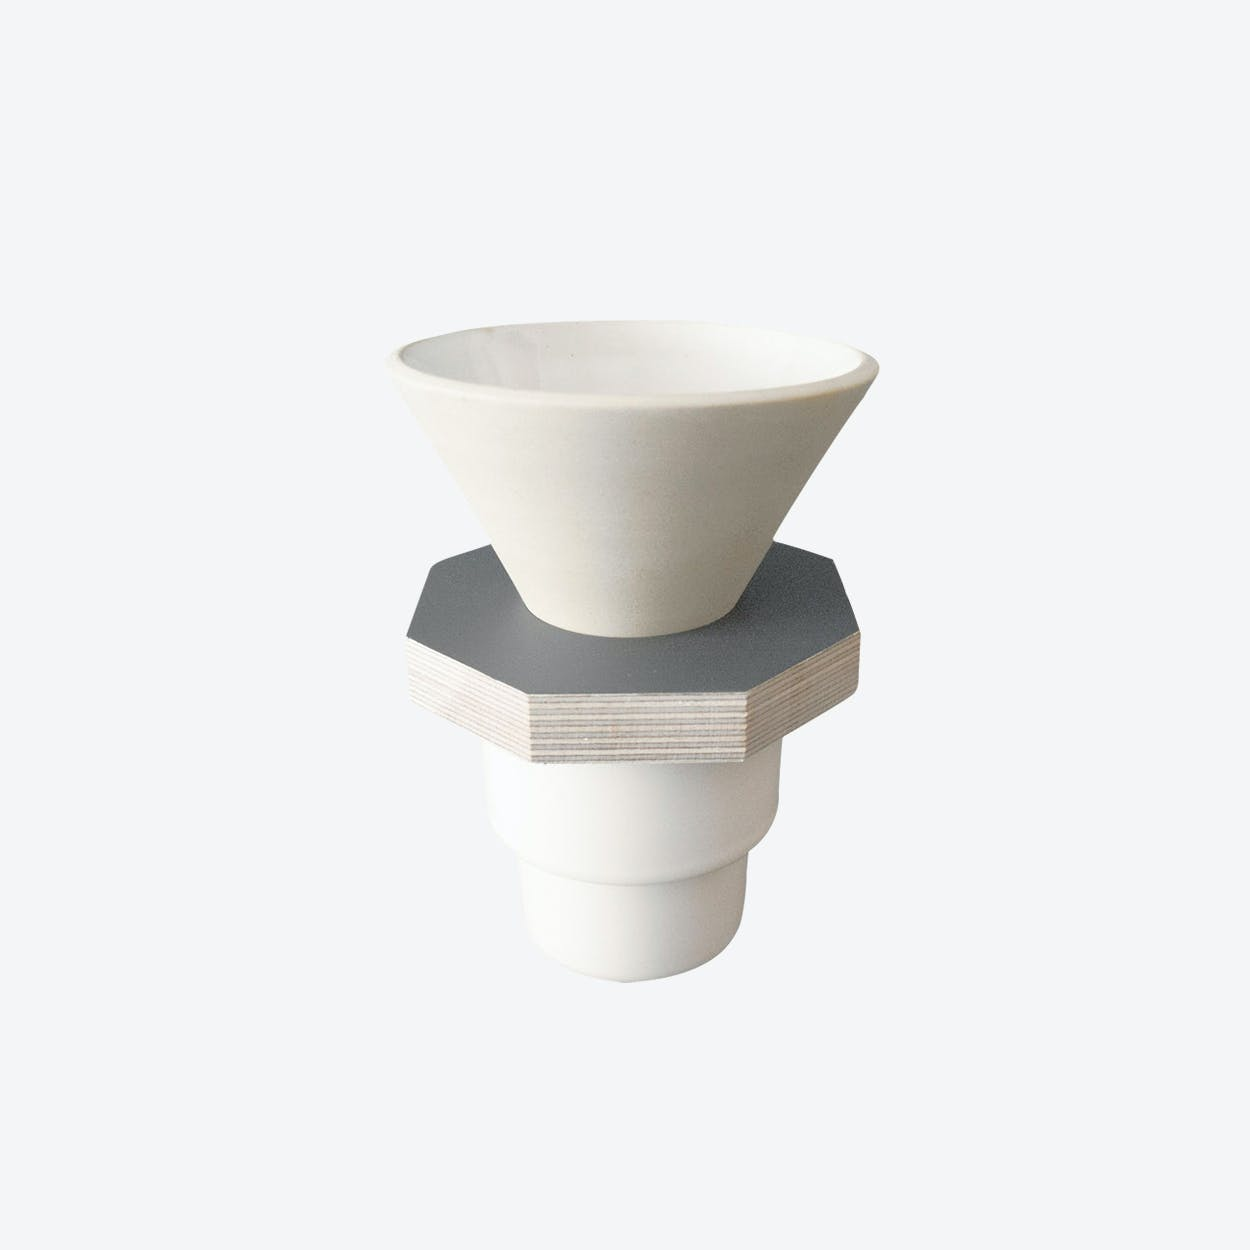 Ceramic Dripper in Beige and Gray Plywood